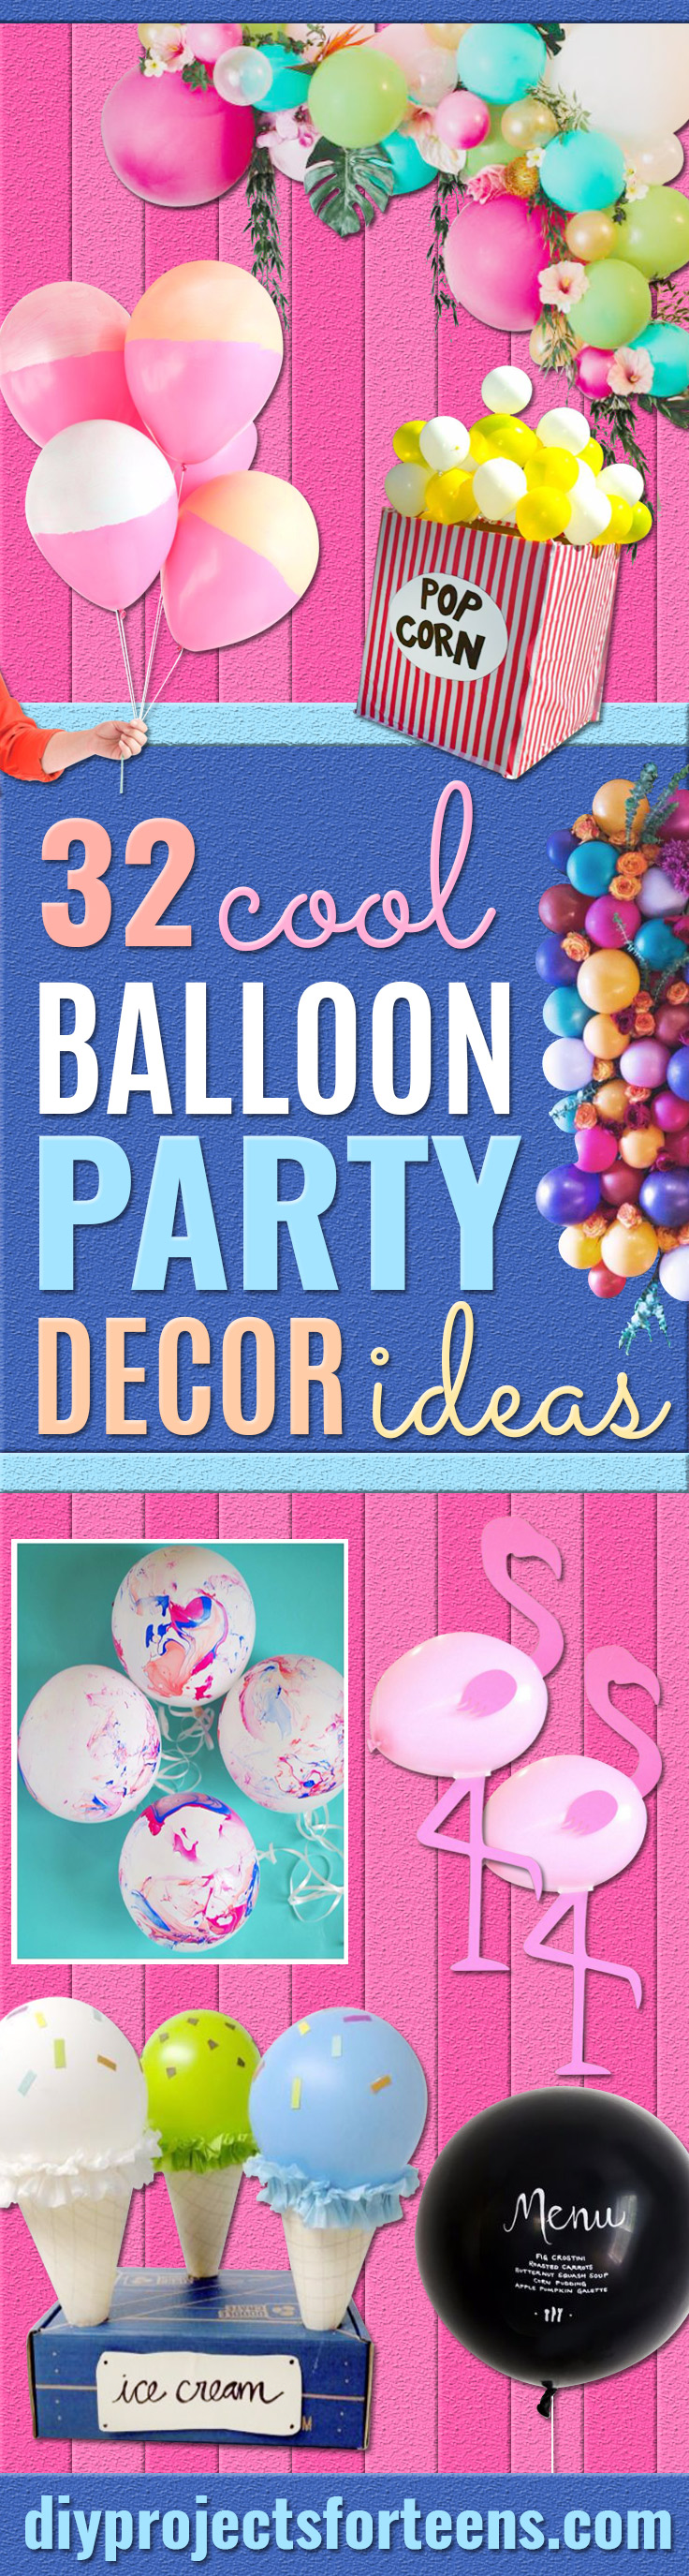 Balloon Crafts - Fun Balloon Craft Ideas, Wall Art Projects and Cute Ballon Decor - DIY Balloon Ideas for Toddlers, Preschool Kids, Teens and Adults - Cheap Crafts Made With Balloons - Pumpkins, Bowls, Marshmallow Shooters, Balls, Glow Stick, Hot Air, Stress Ball http://diyjoy.com/balloon-crafts